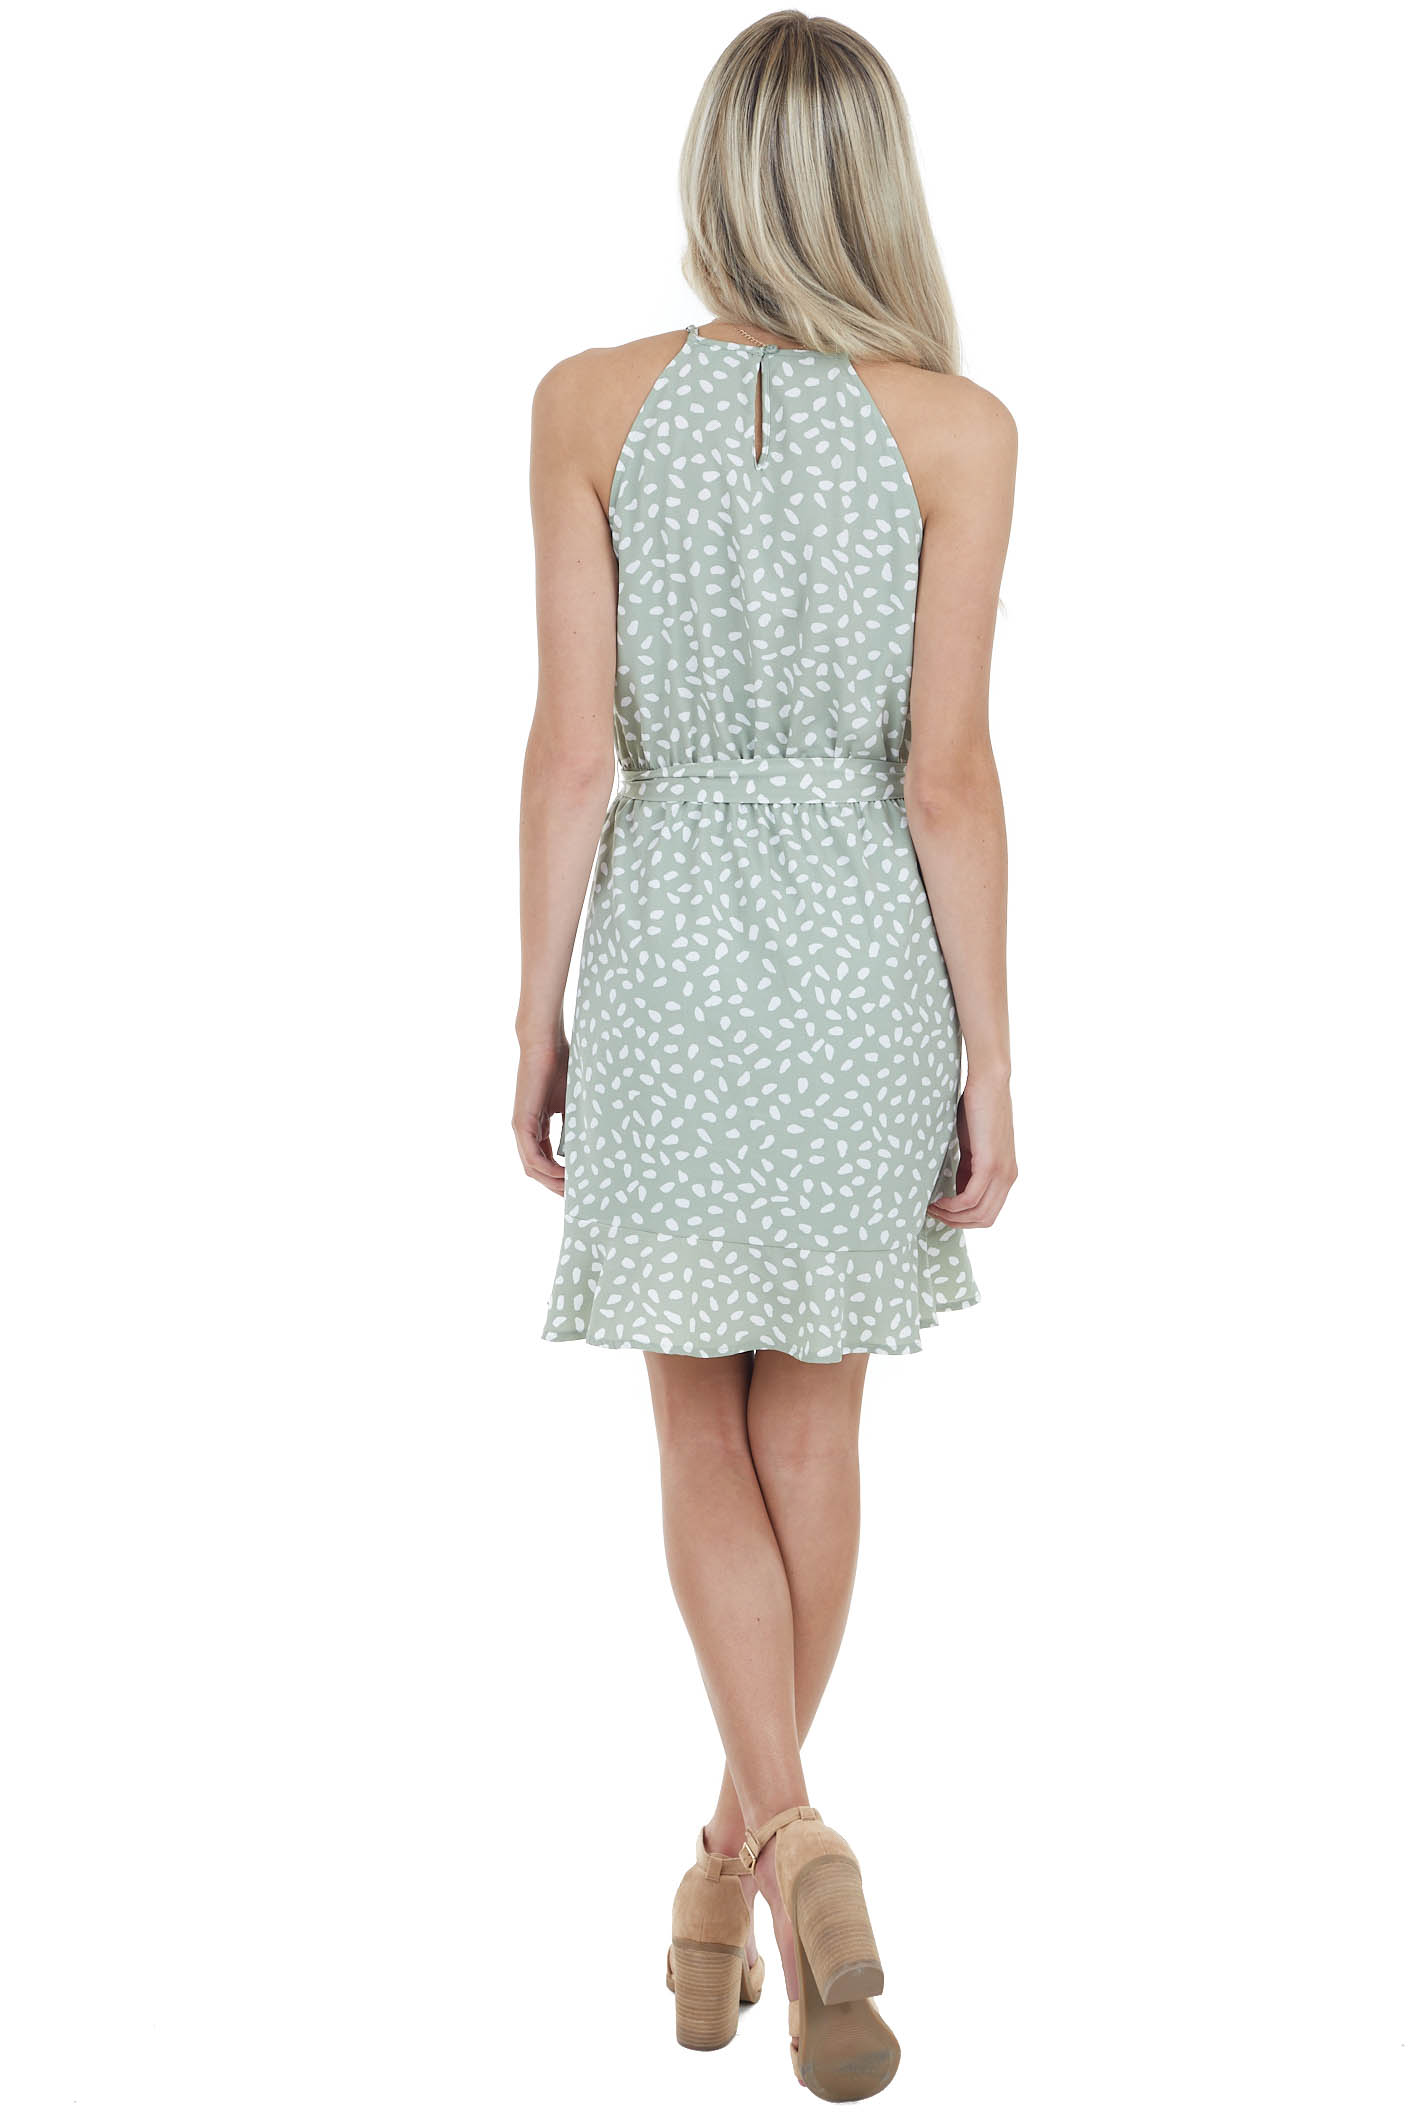 Sage and White Spotted Sleeveless Dress with Waist Tie